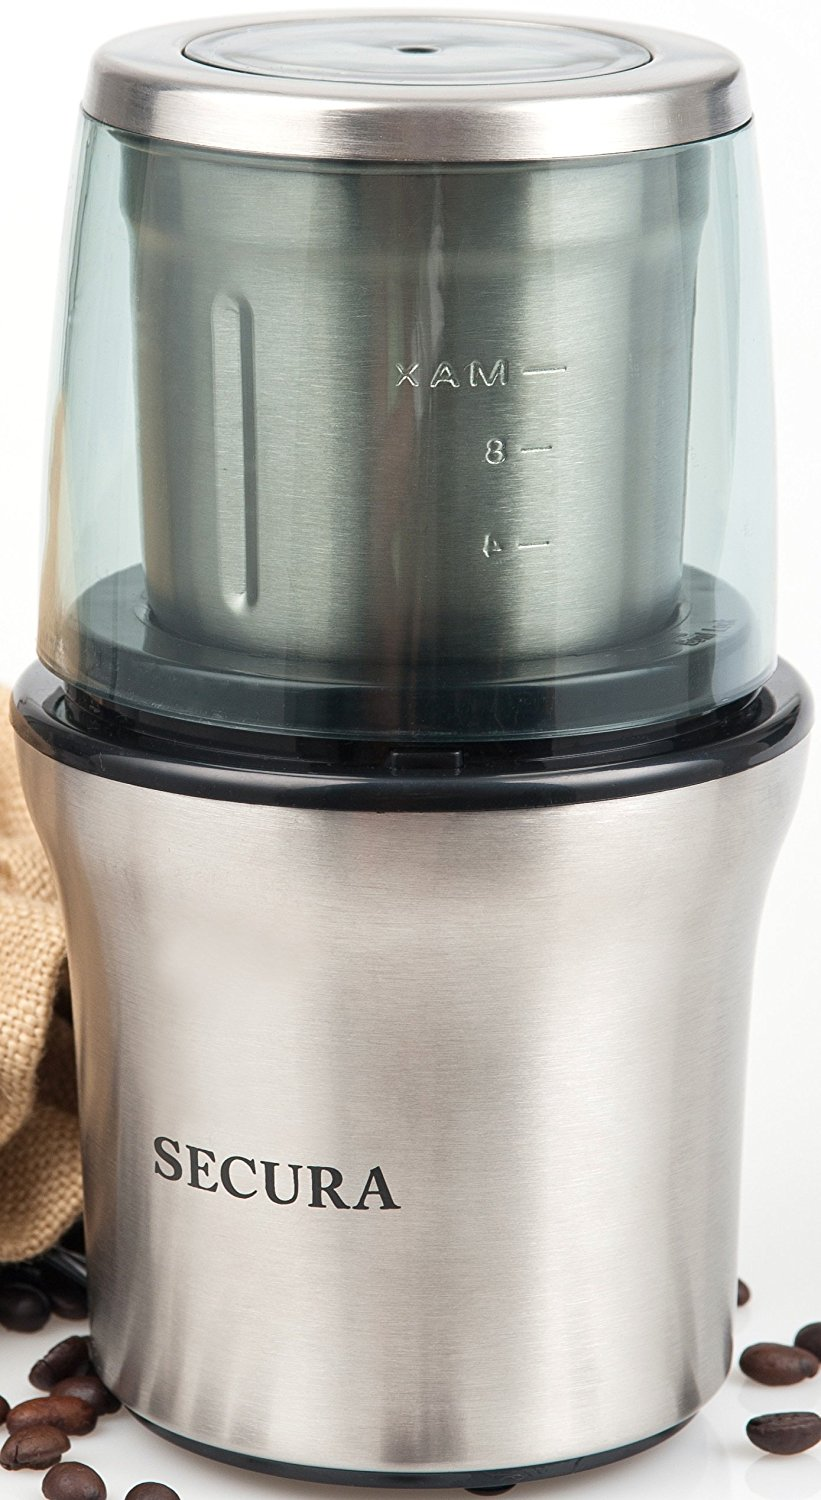 Secura Electric Coffee and Spice Grinder with Stainless Steel Blades Removable Bowl 0